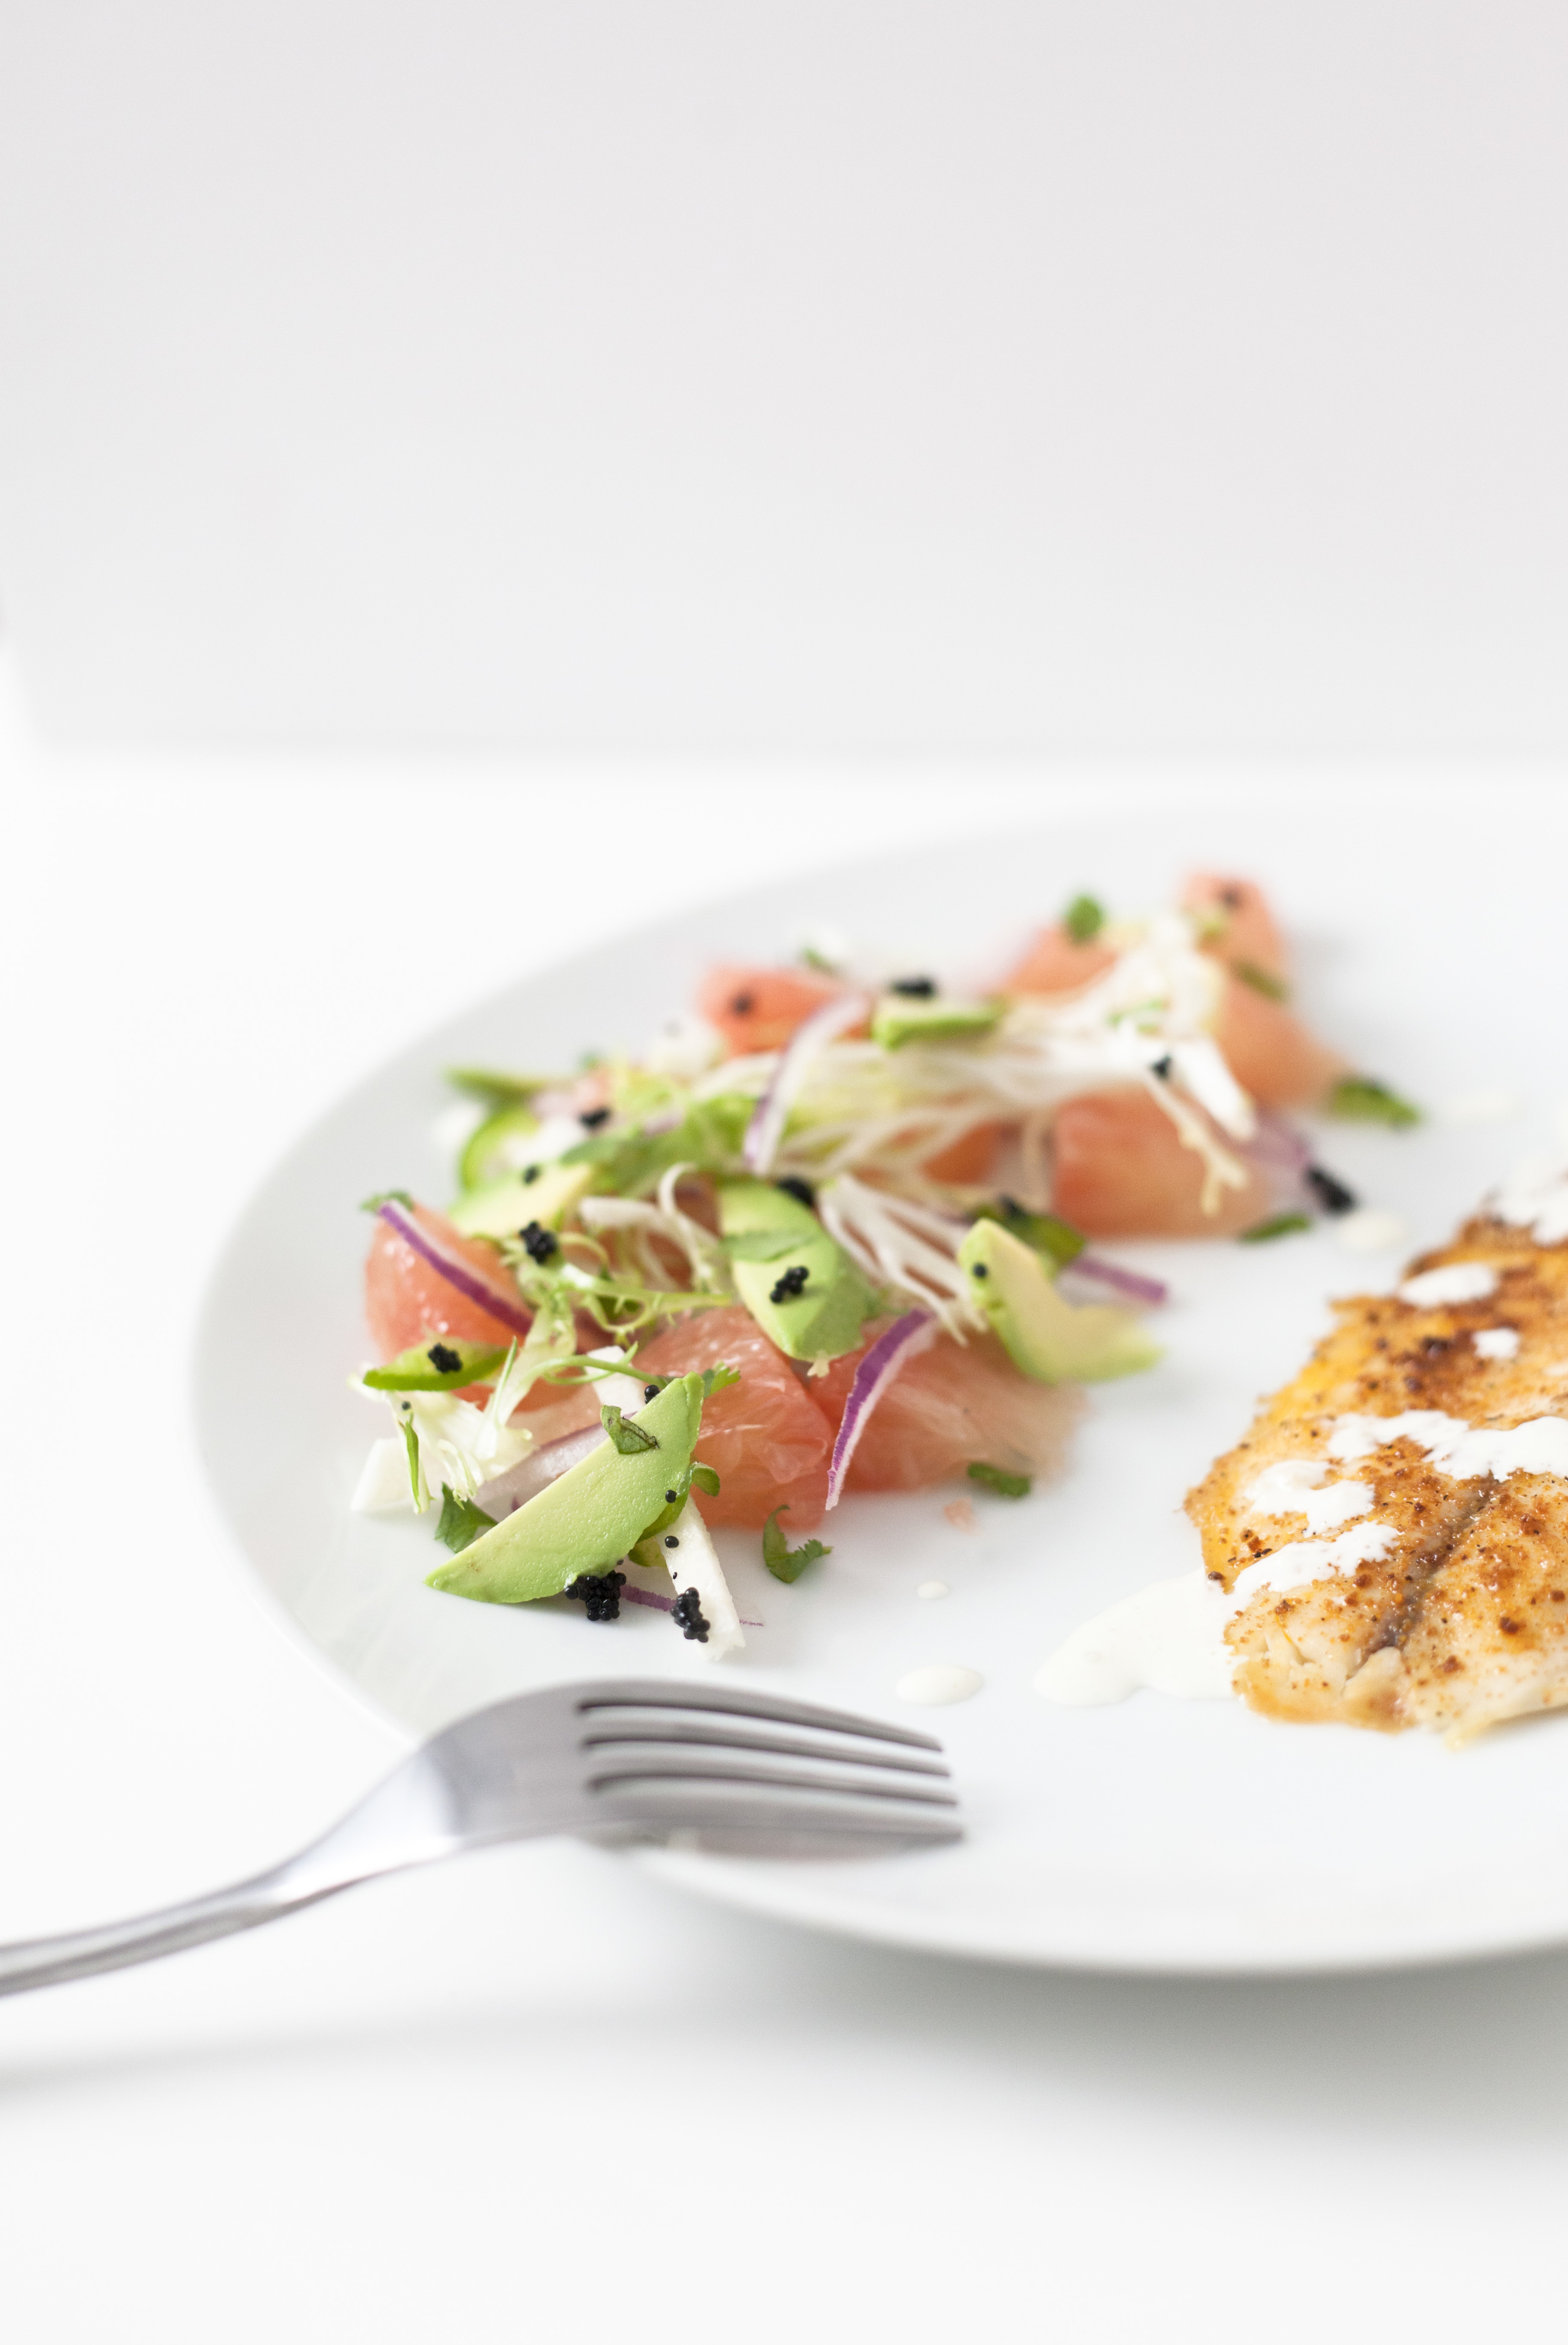 light tropical salad with fish, healthy dinner recipe